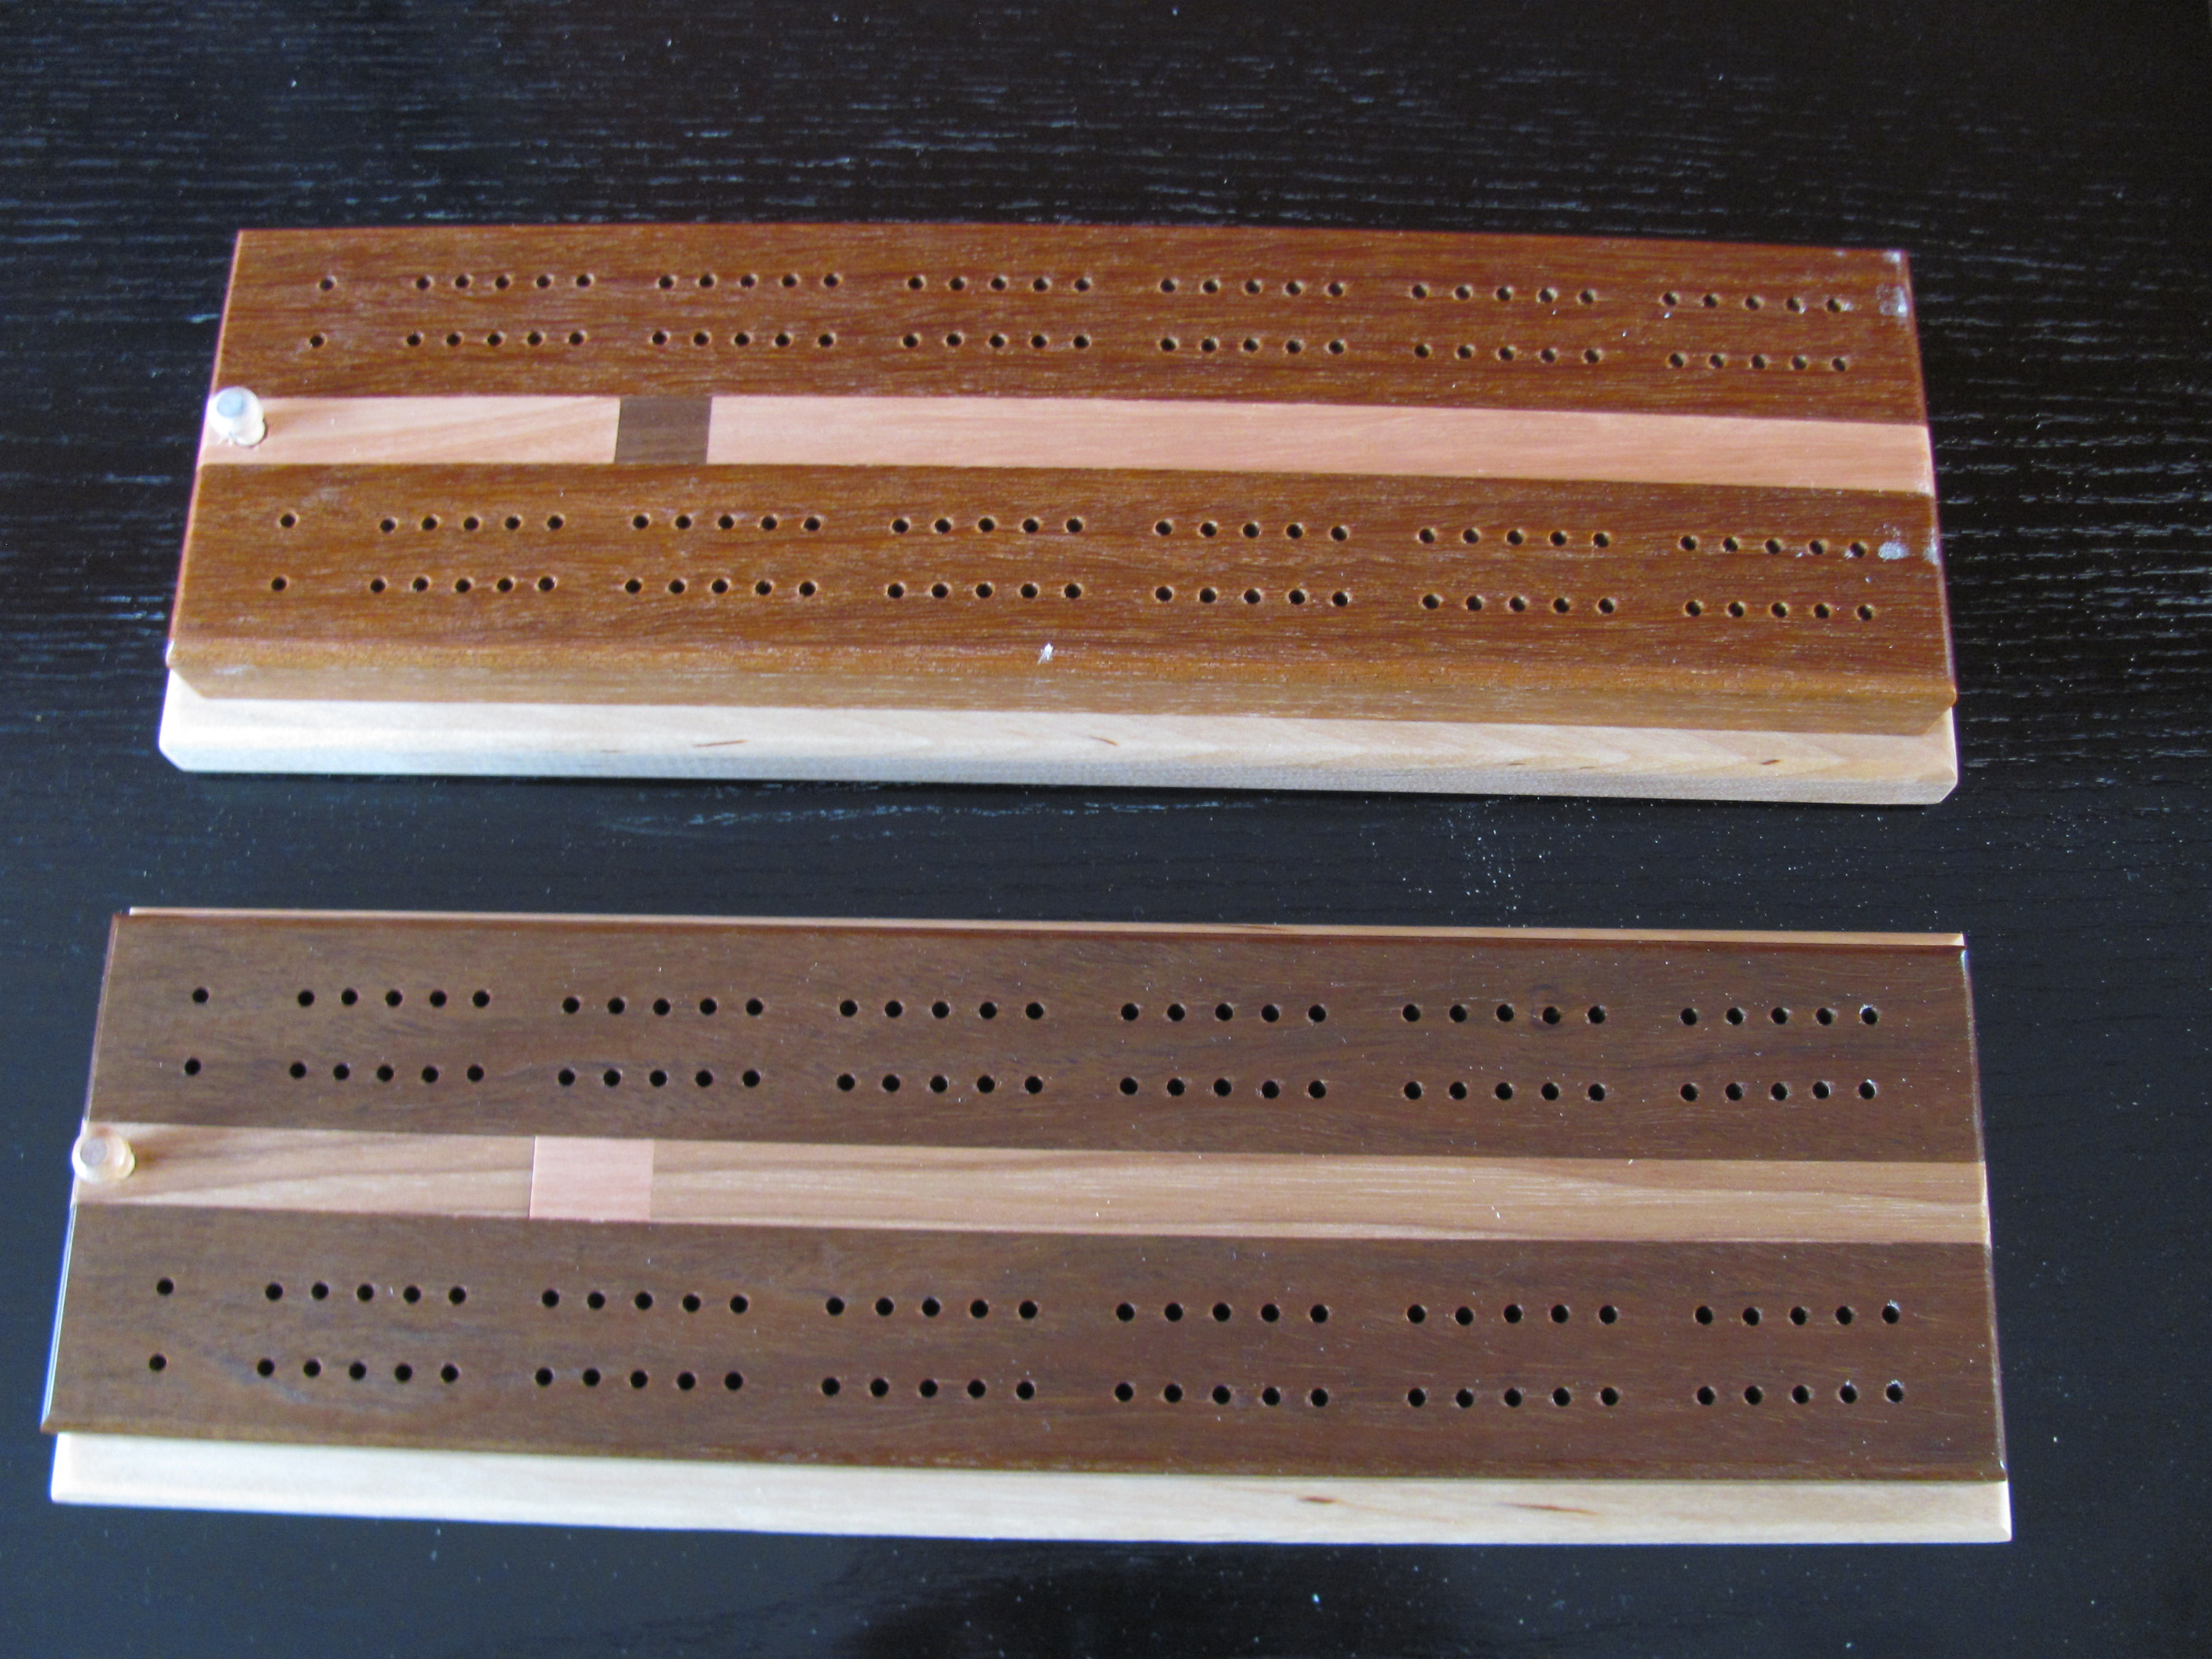 It is an image of Genius Printable Cribbage Boards